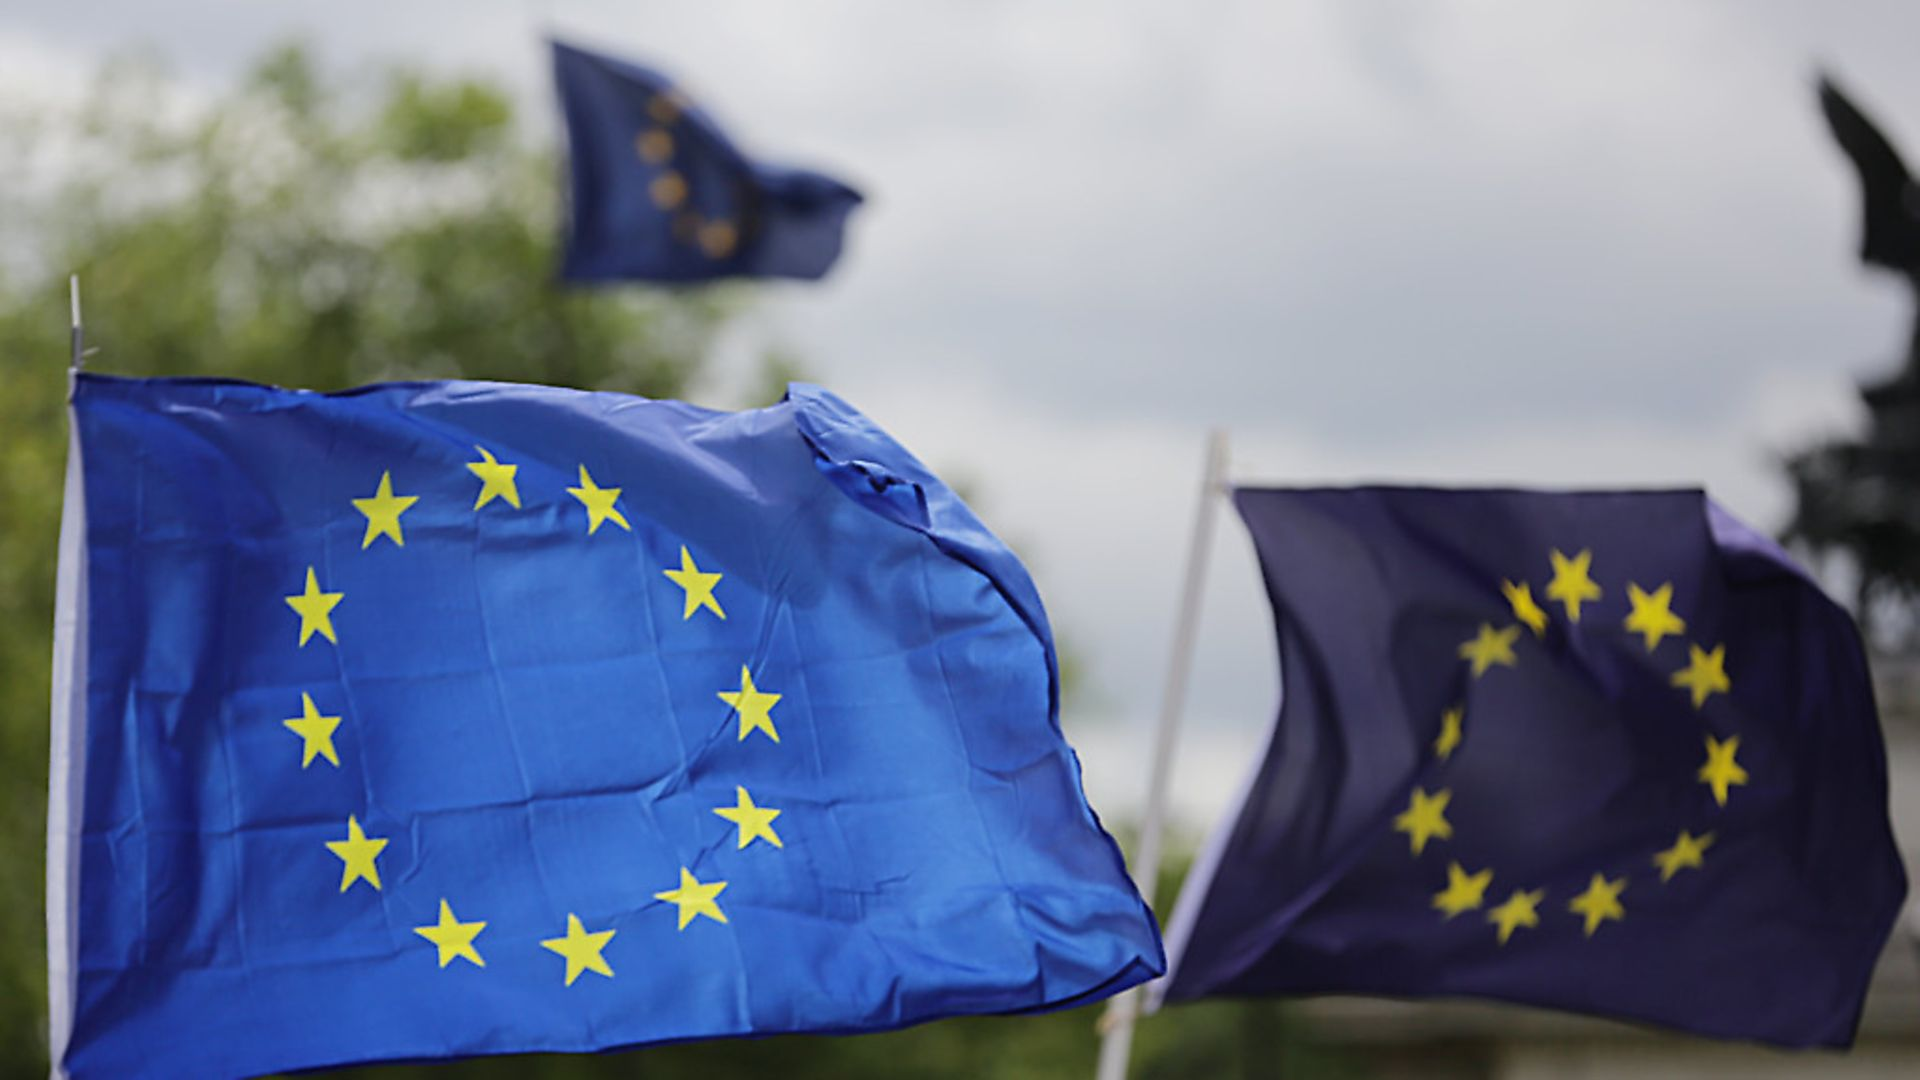 European flags fly in Parliament Square. Photograph: Daniel Leal-Olivas/PA. - Credit: PA